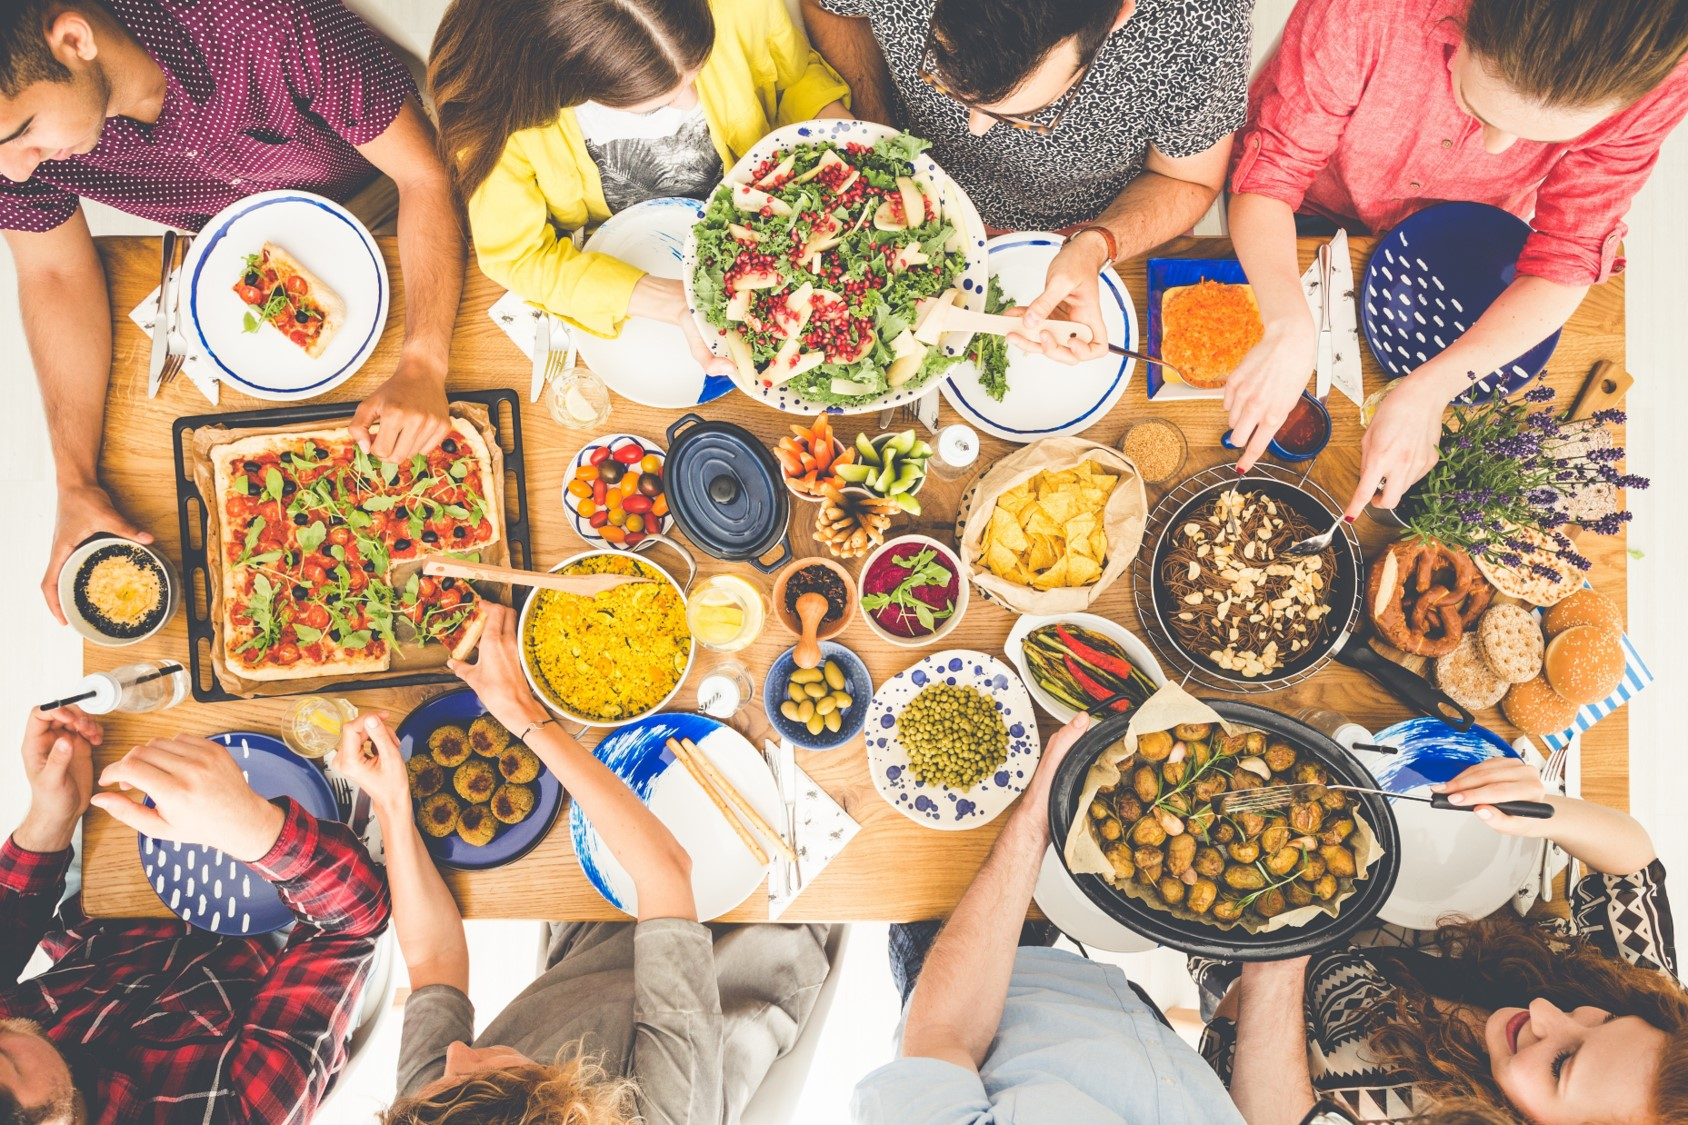 Dinner with the Doctor  A plant-based meal and health talk on lifestyle medicine